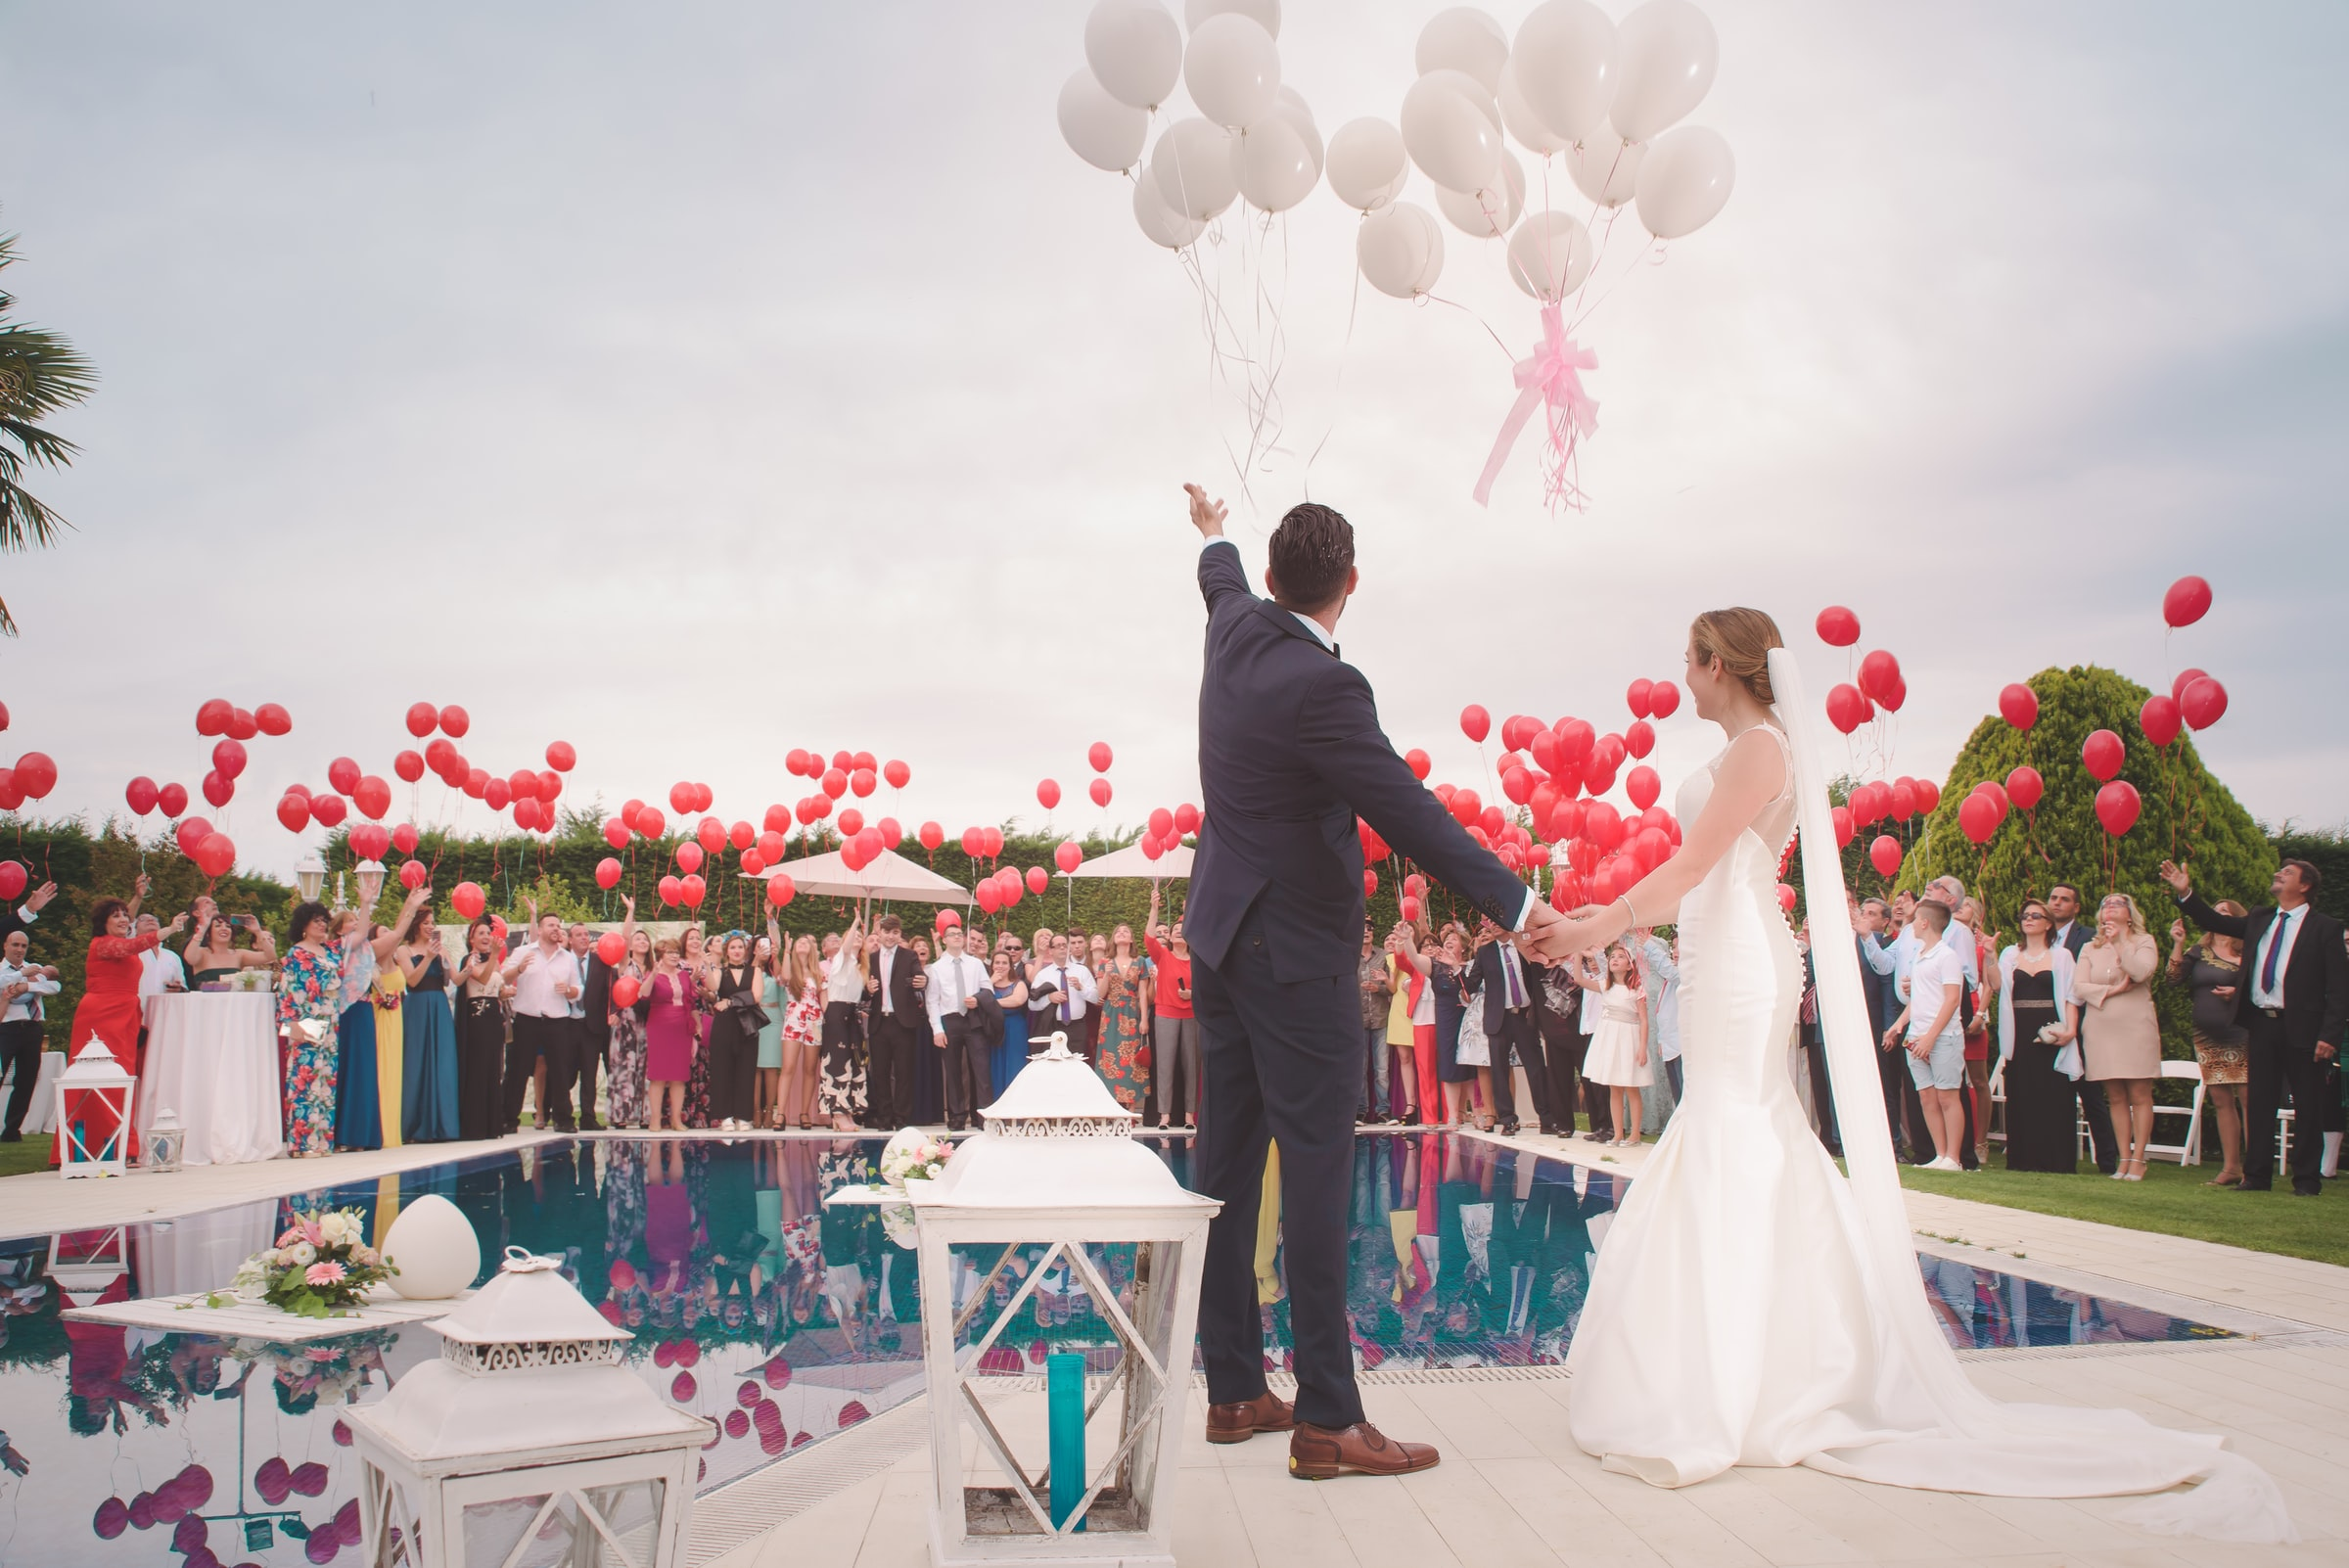 A bride and groom look at balloons being flown